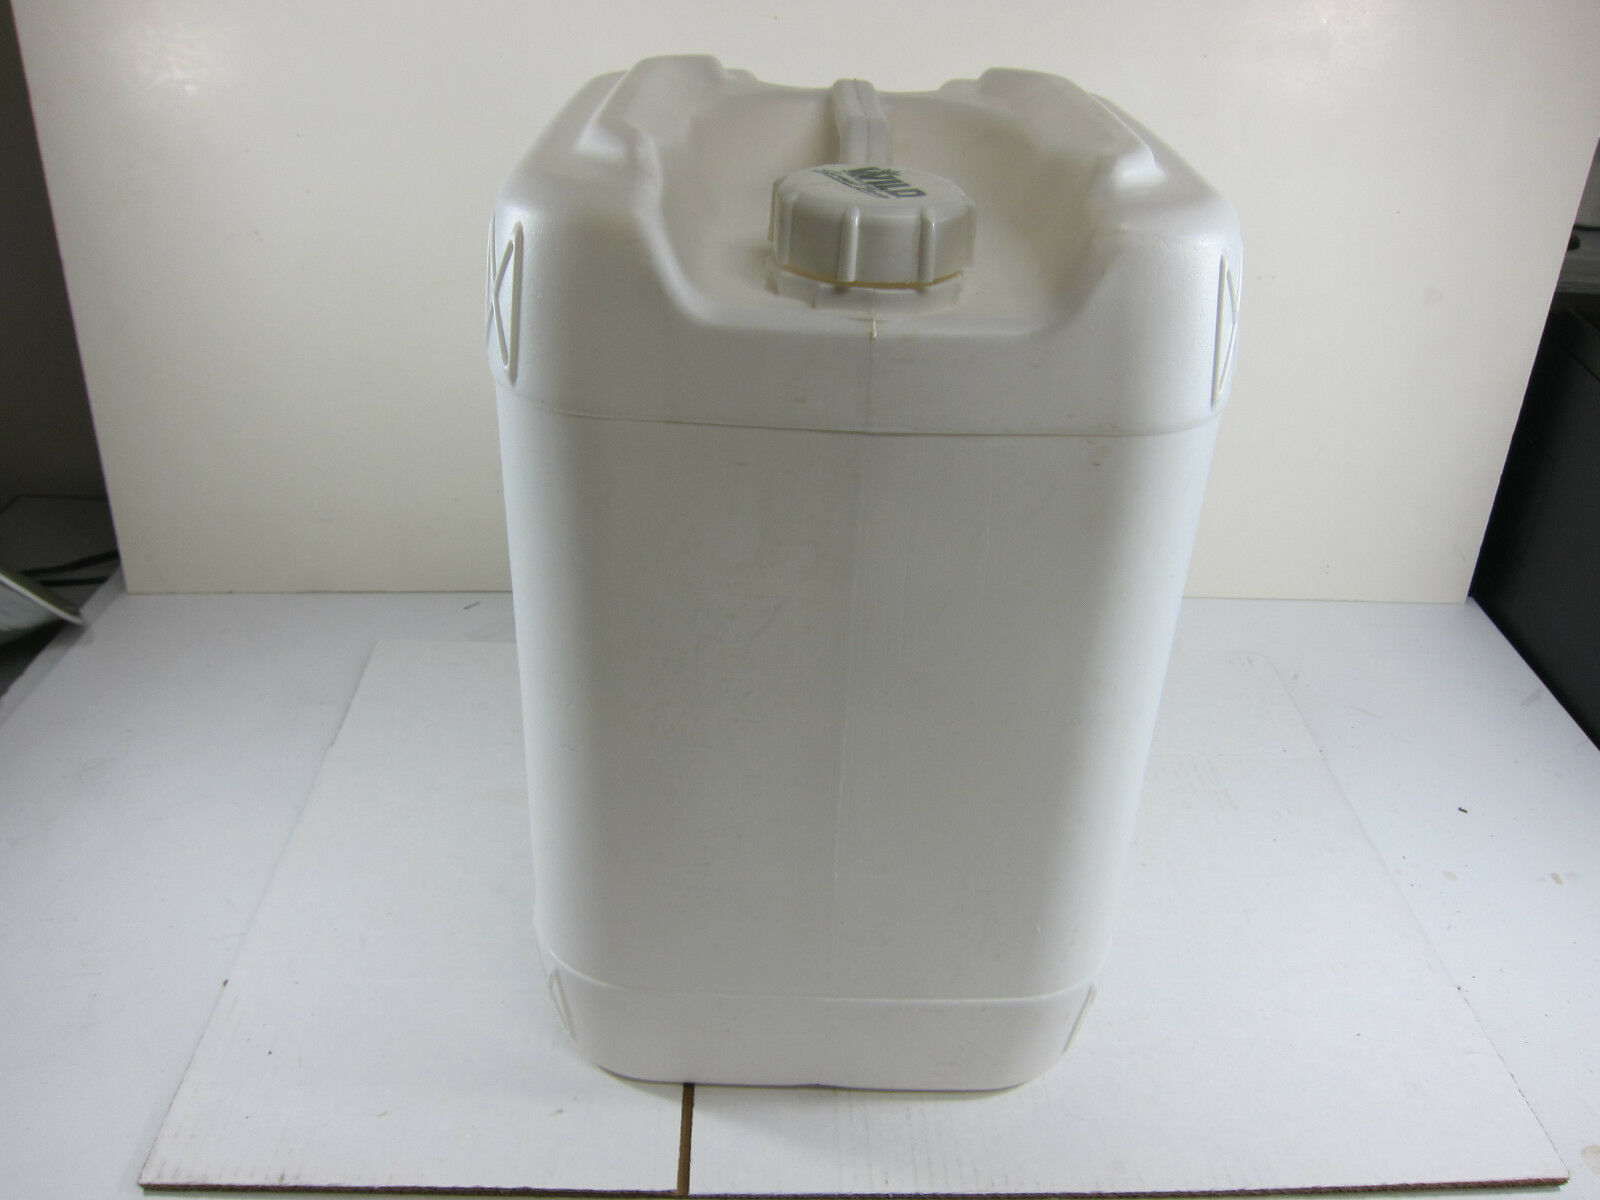 4 to 5 Gallon Weiß Plastic Food Grade Water Storage Container w Cap Lot 4 Used